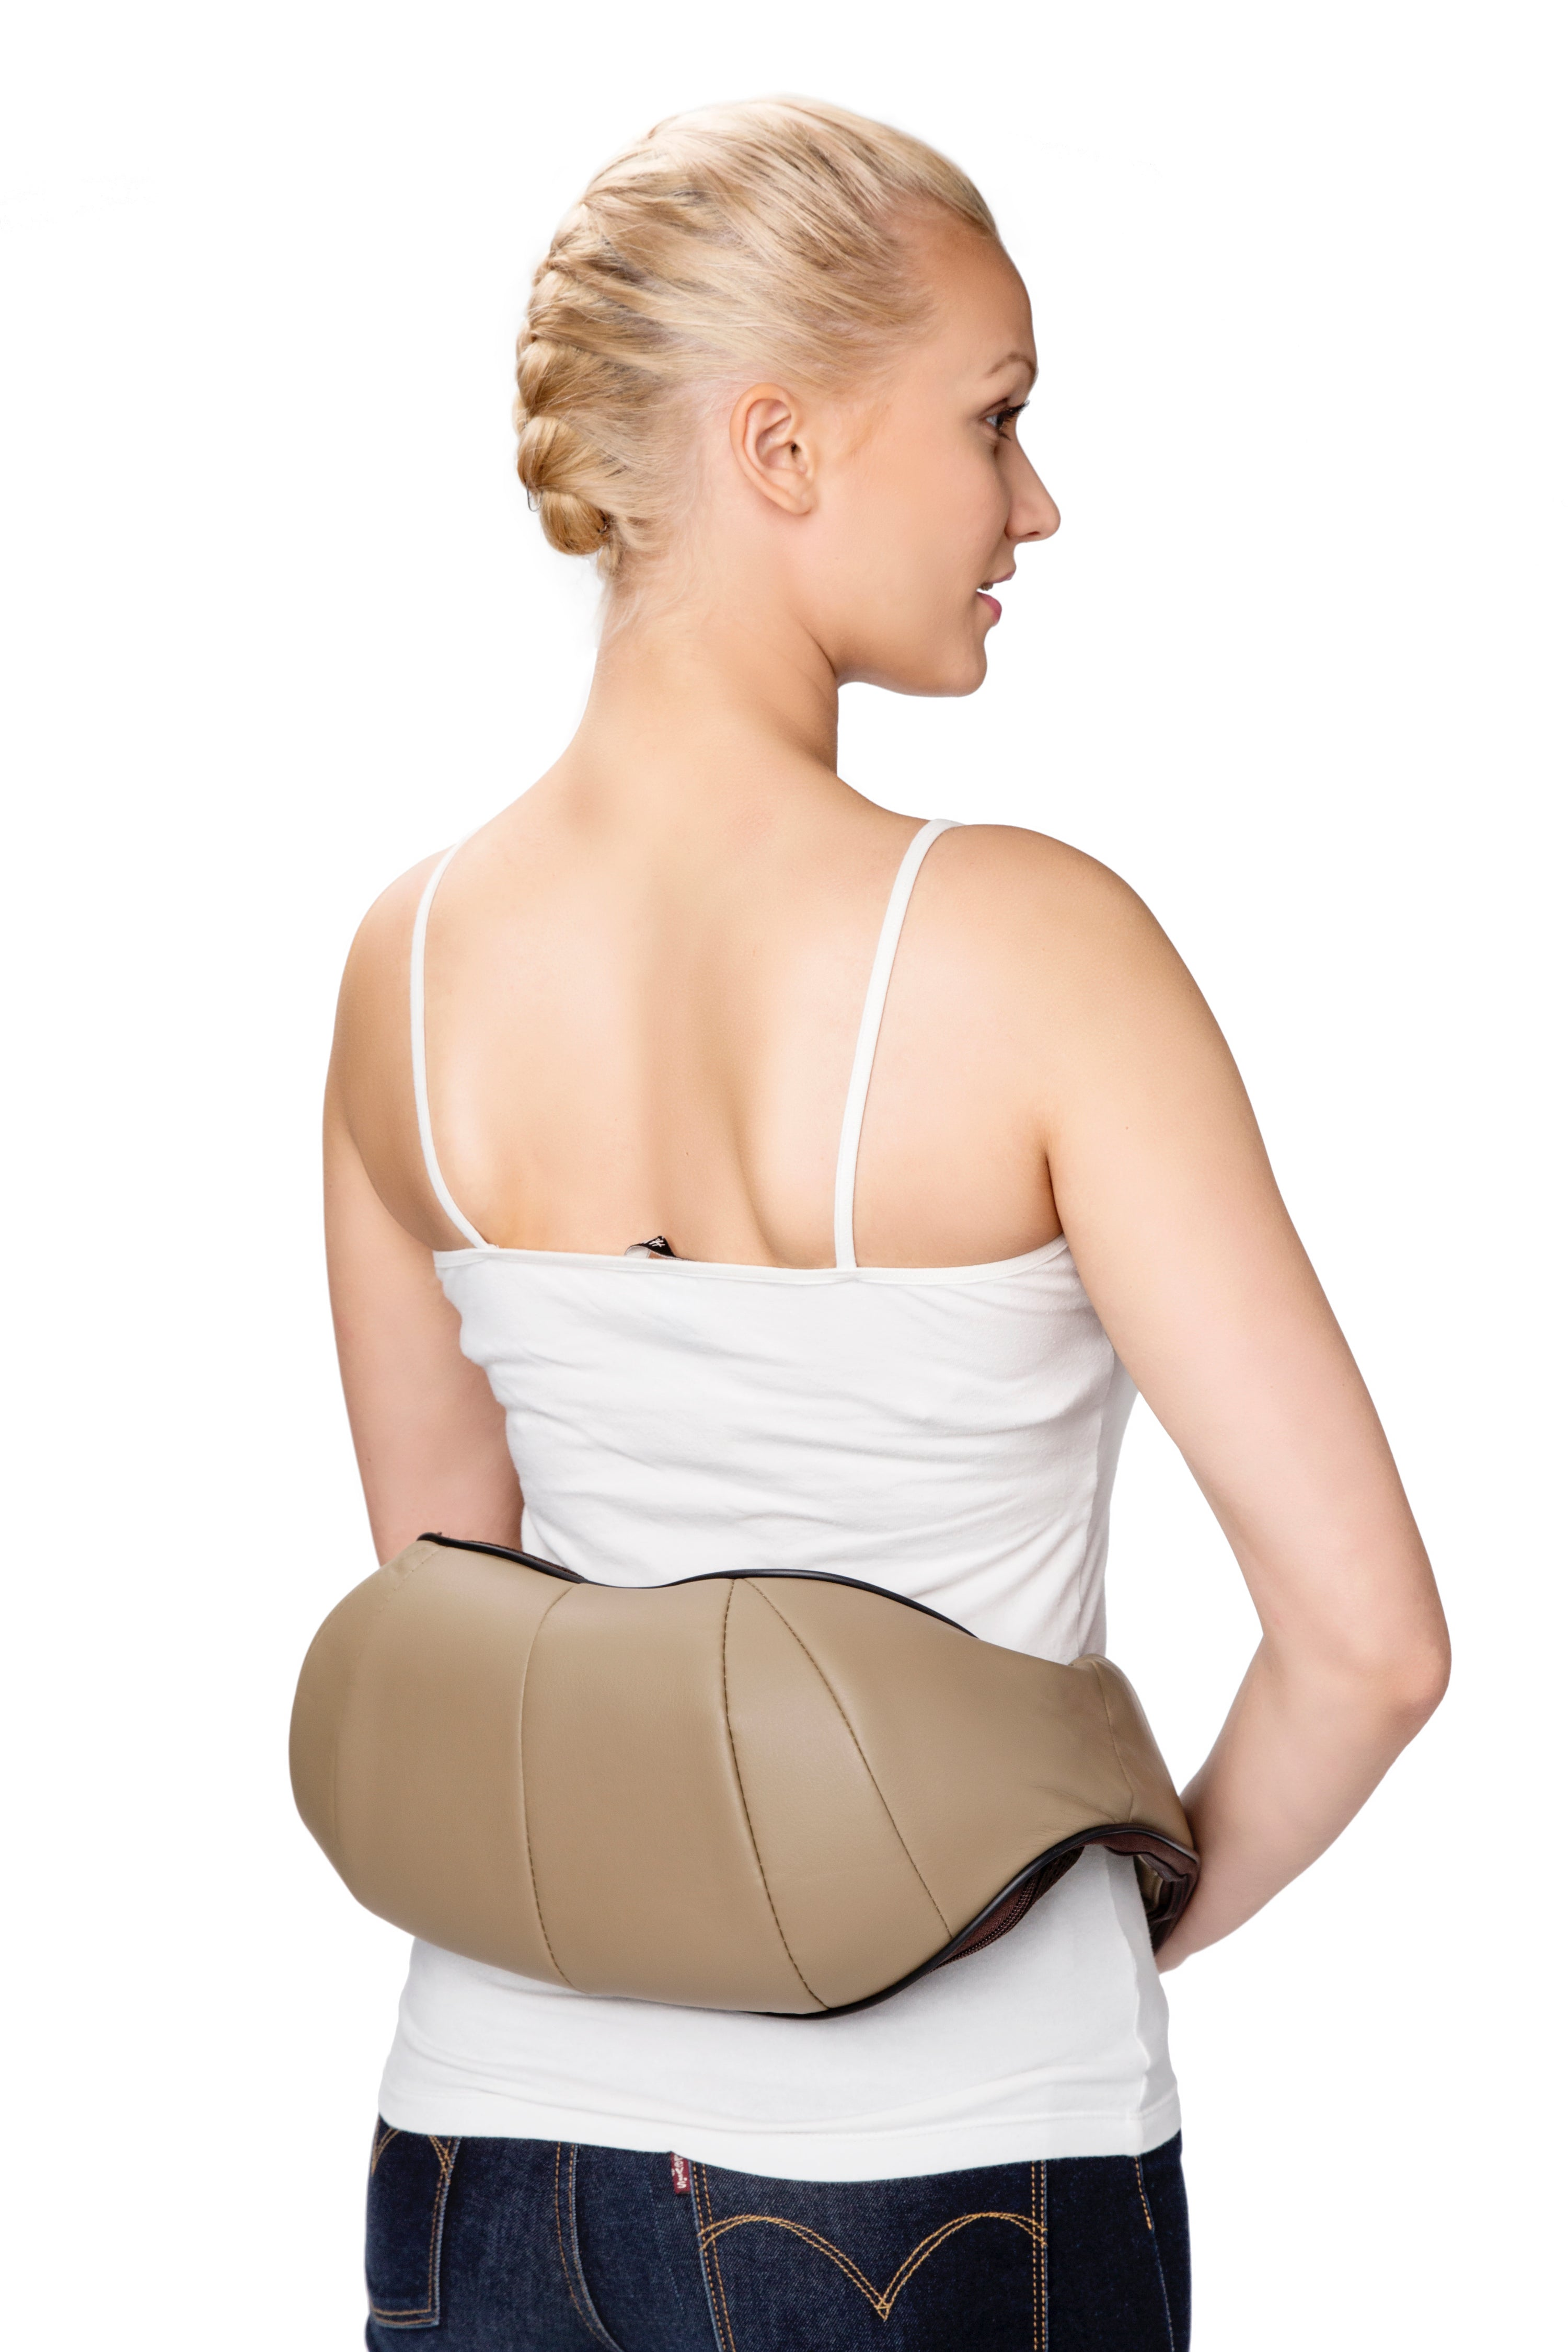 Schultz ZycraPulse™ Shoulder Massager